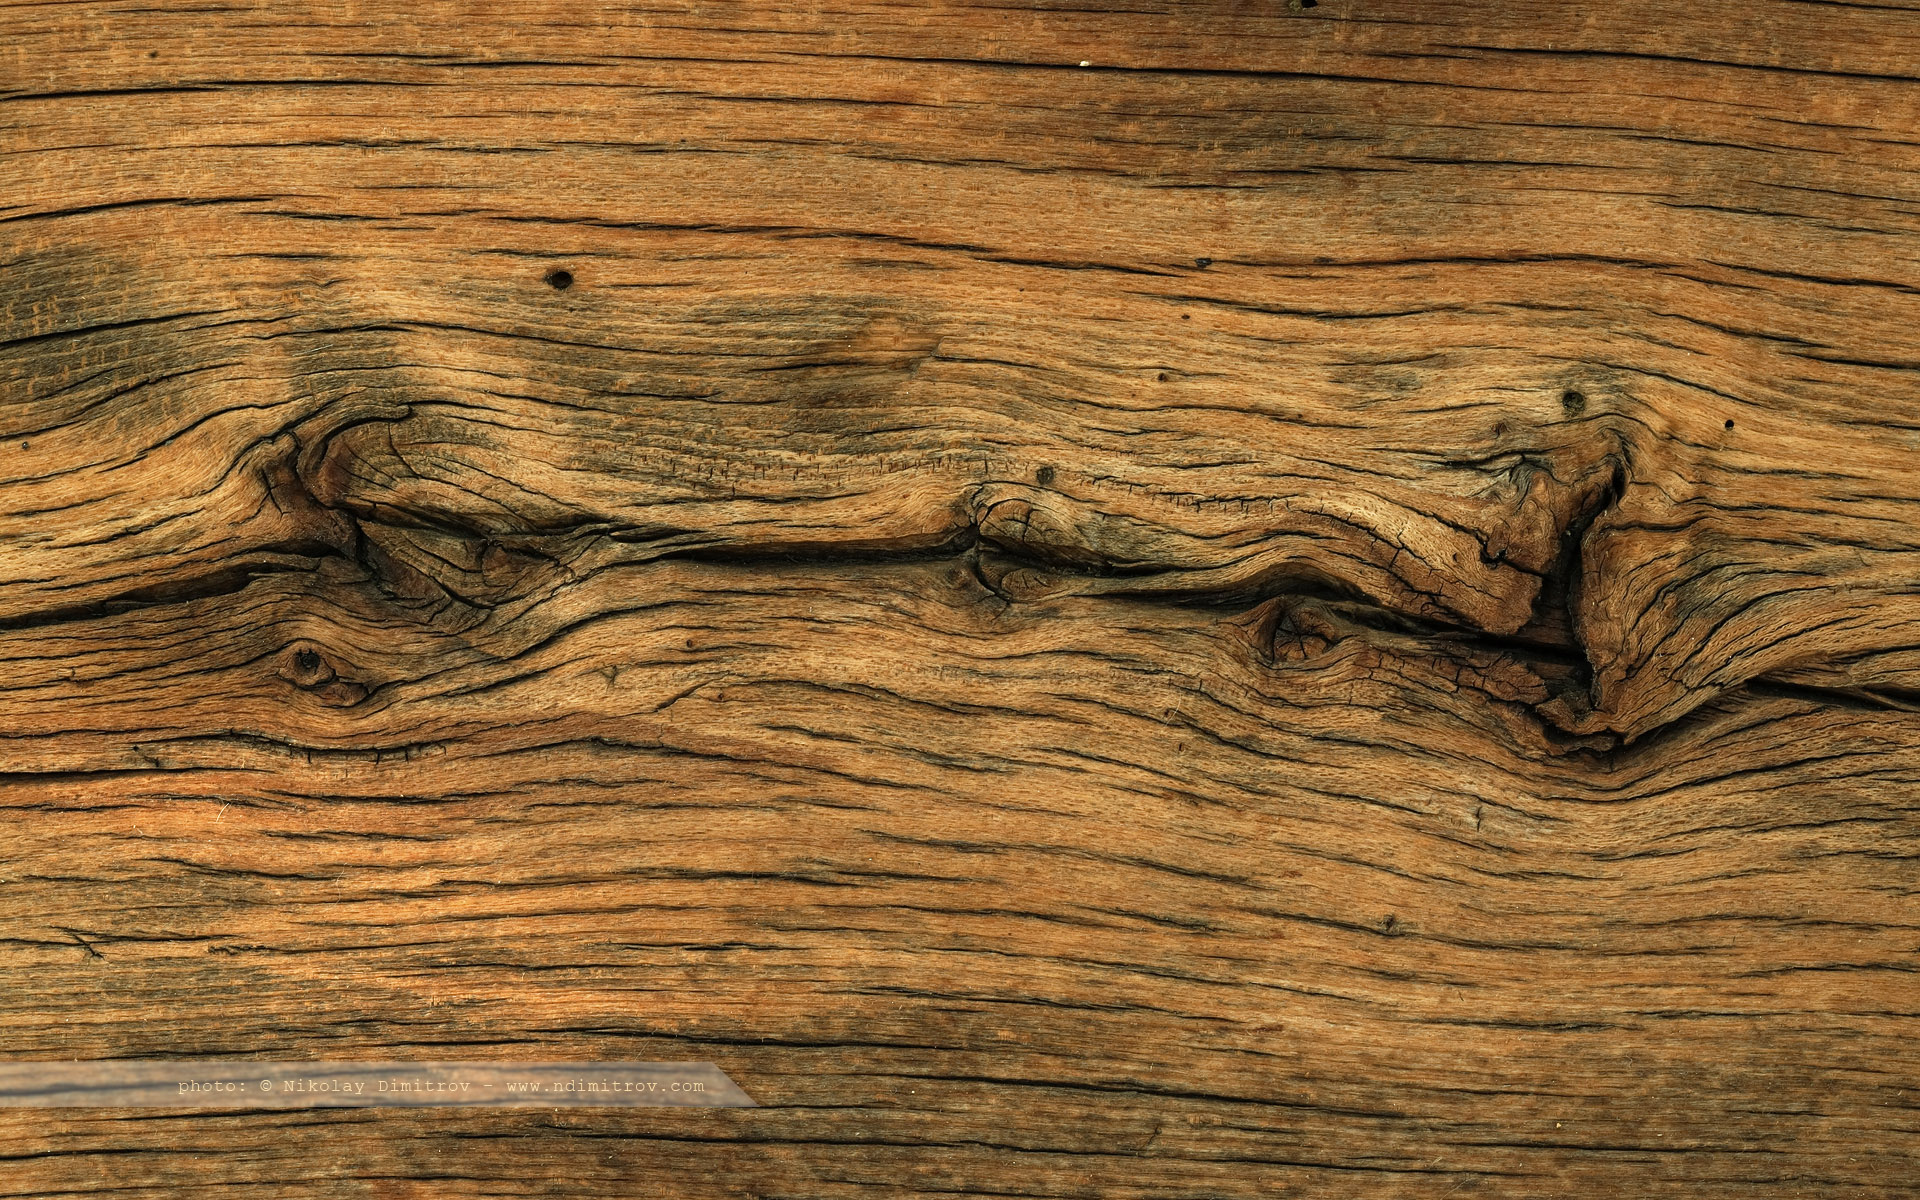 Vintage wood wallpaper vintage wood wallpaper for android backgrounds - Old Oak Wood Wallpaper 1920x1200 For Imac